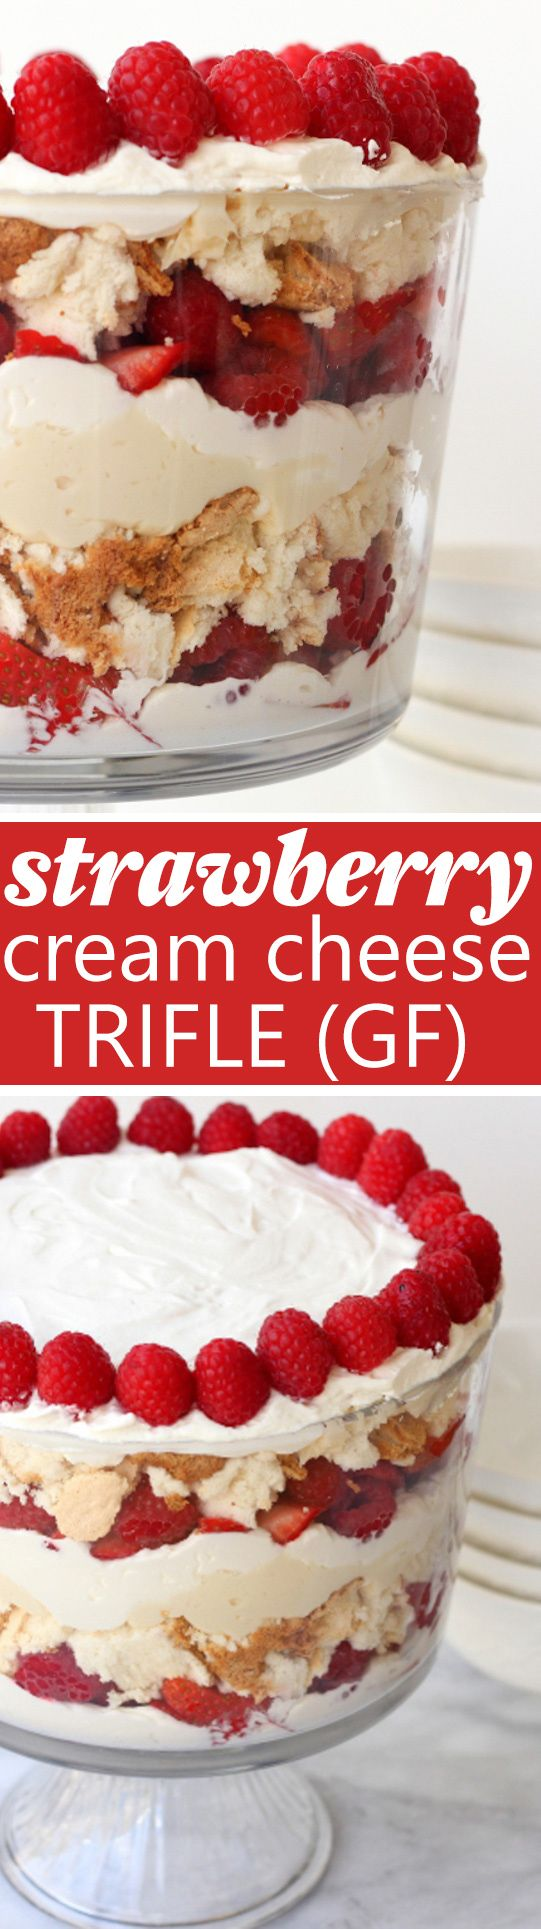 Strawberry Cream Cheese Trifle (Gluten-Free!) Layers of gluten-free angel food cake with fresh berries, whipped cream and cream cheese. Everyone always asks for this recipe! Dessert Recipes Easy, Dessert Recipes Healthy, Dessert Recipes For A Crowd, Dessert Recipes Cake, Cake Recipes Easy, Cake Recipes Healthy, Cake Recipes Strawberry, Cake Recipes Layer, #cake #glutenfree #healthycake #trifle #strawberry